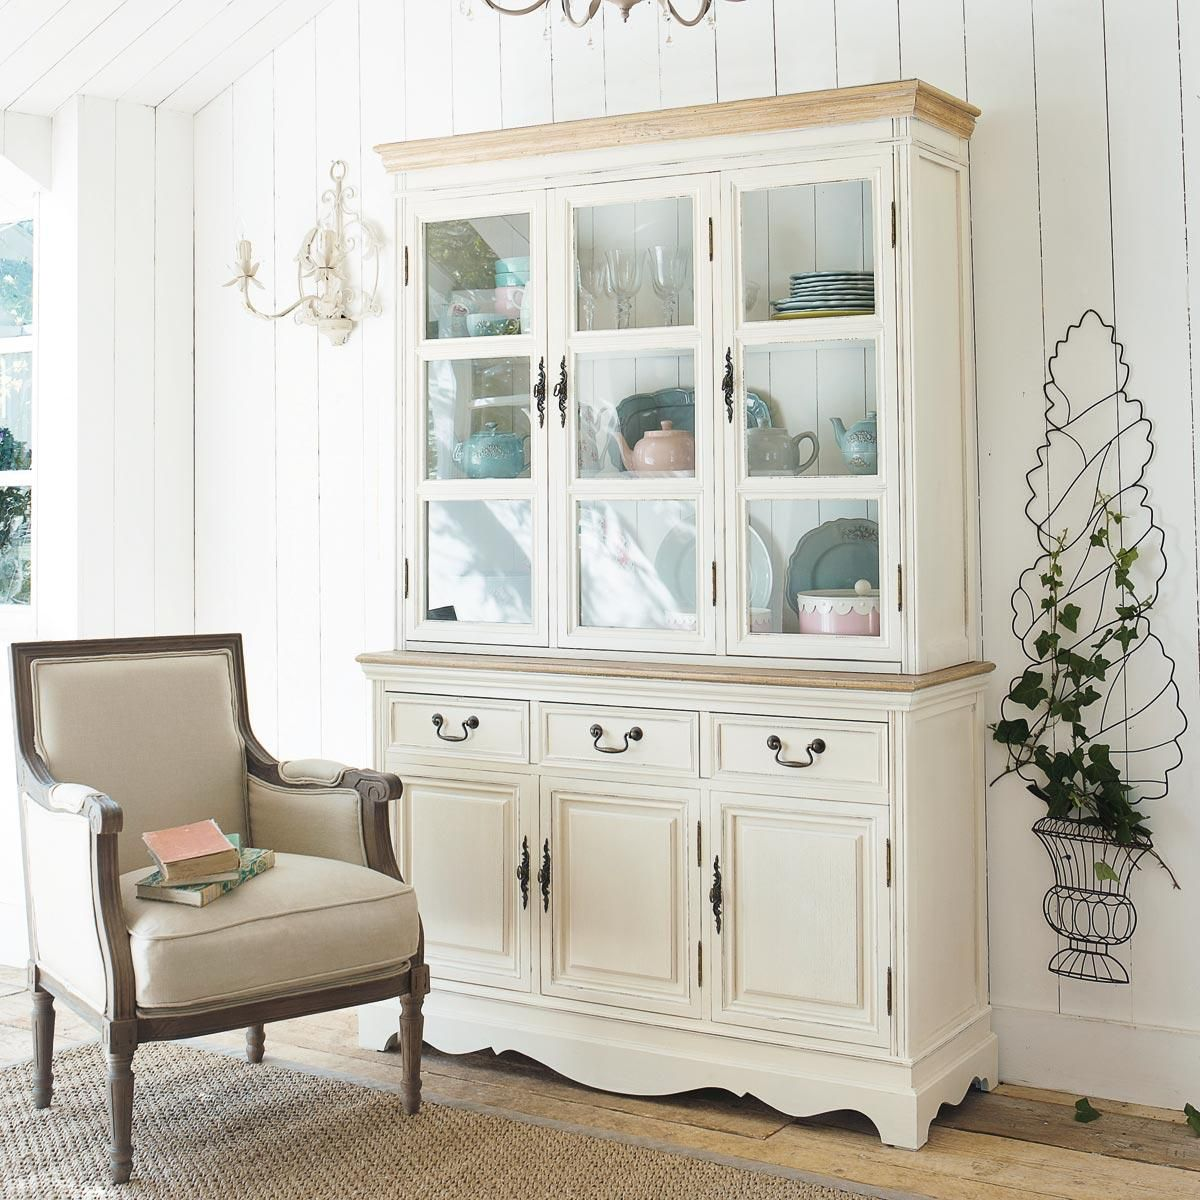 vaisselier en bois de paulownia cr me l 123 cm l ontine maisons du monde buffet pinterest. Black Bedroom Furniture Sets. Home Design Ideas